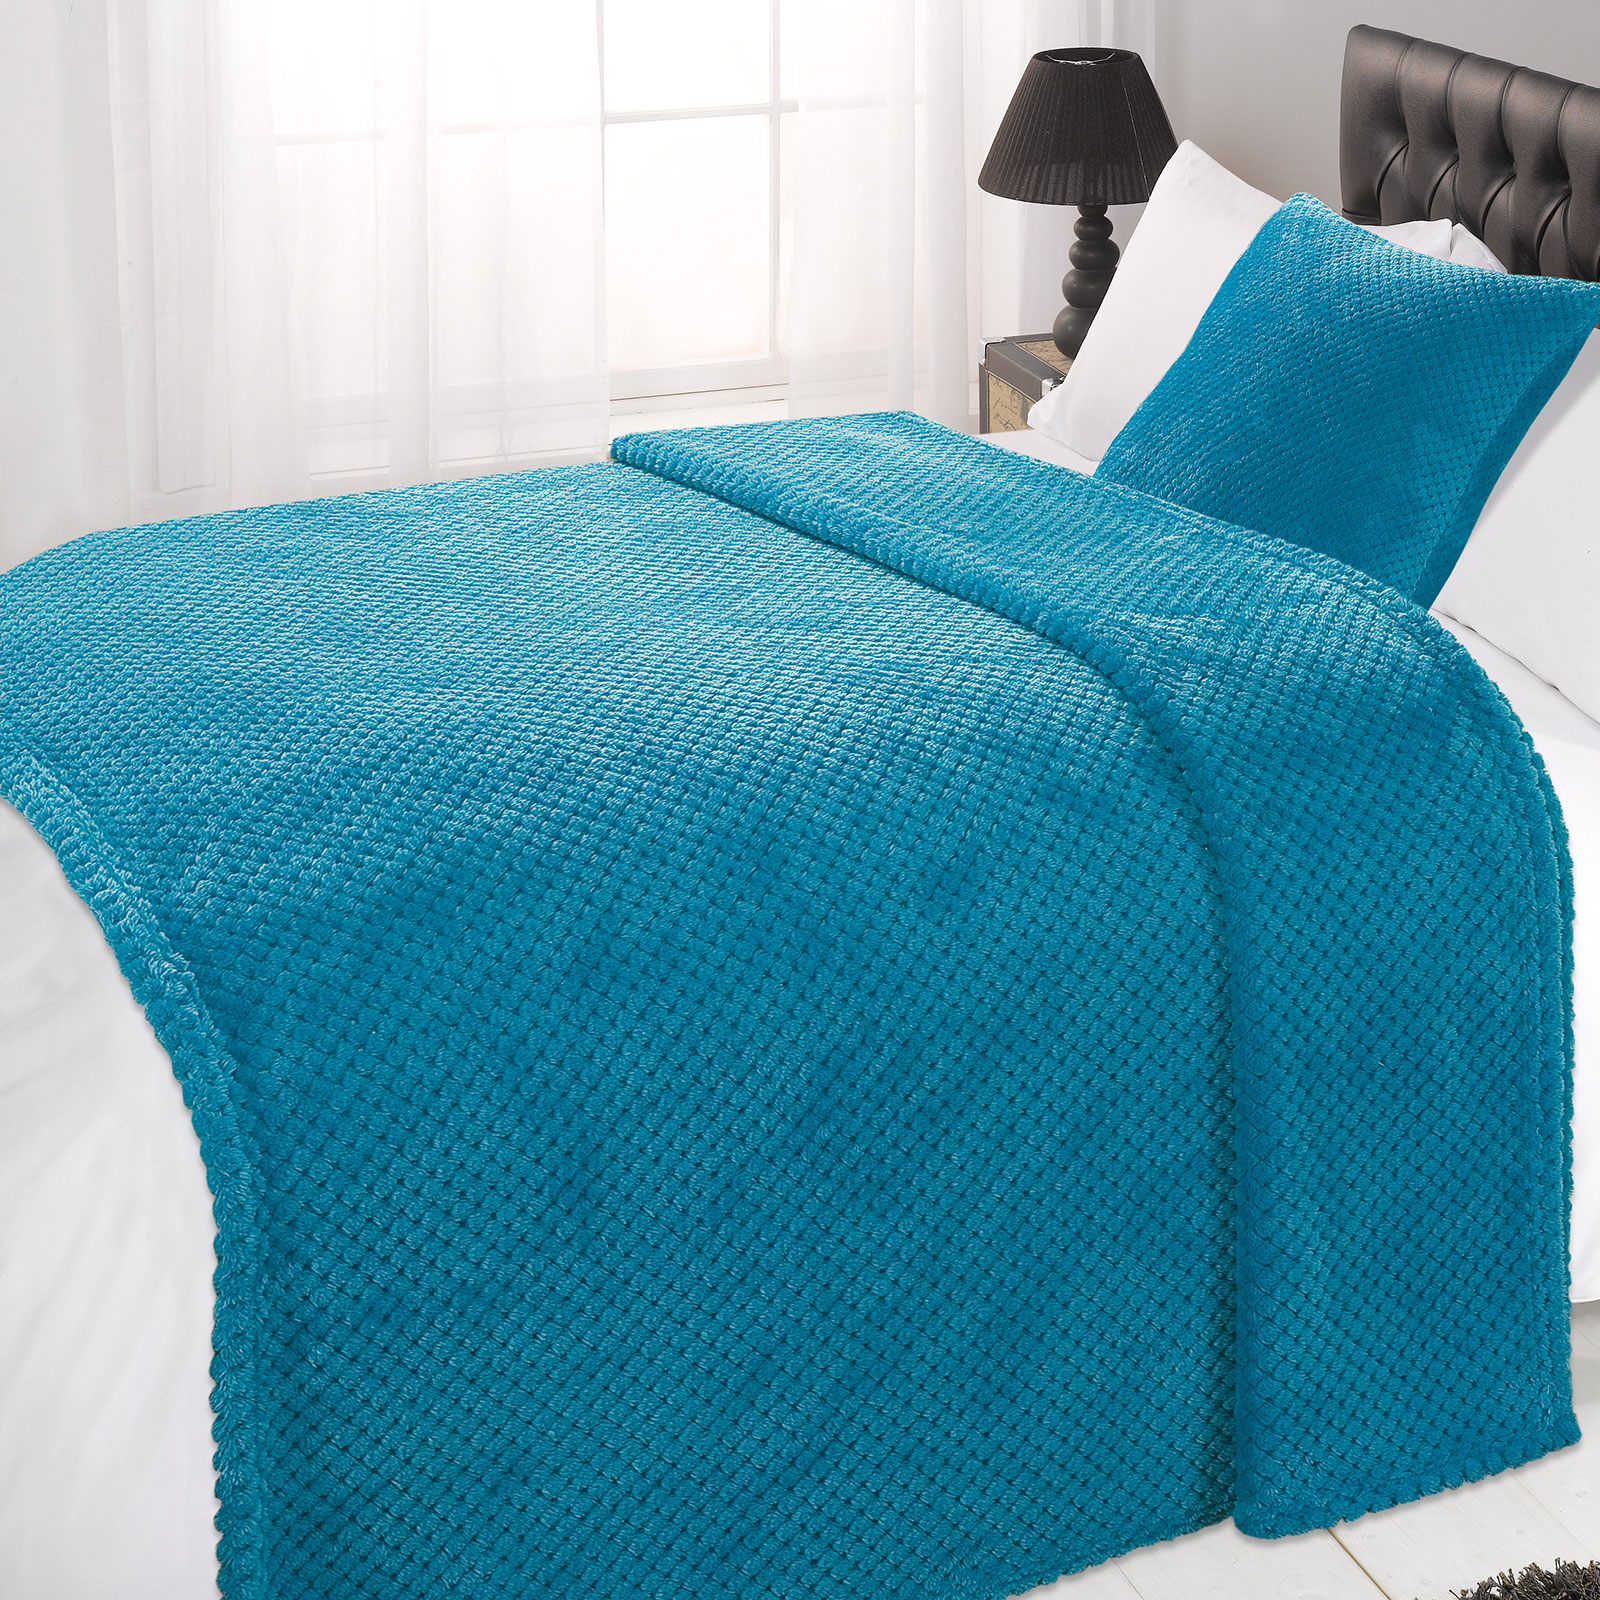 Dreamscene-Large-Waffle-Throw-Over-Warm-Mink-Honeycomb-Bedspread-Luxury-Blanket